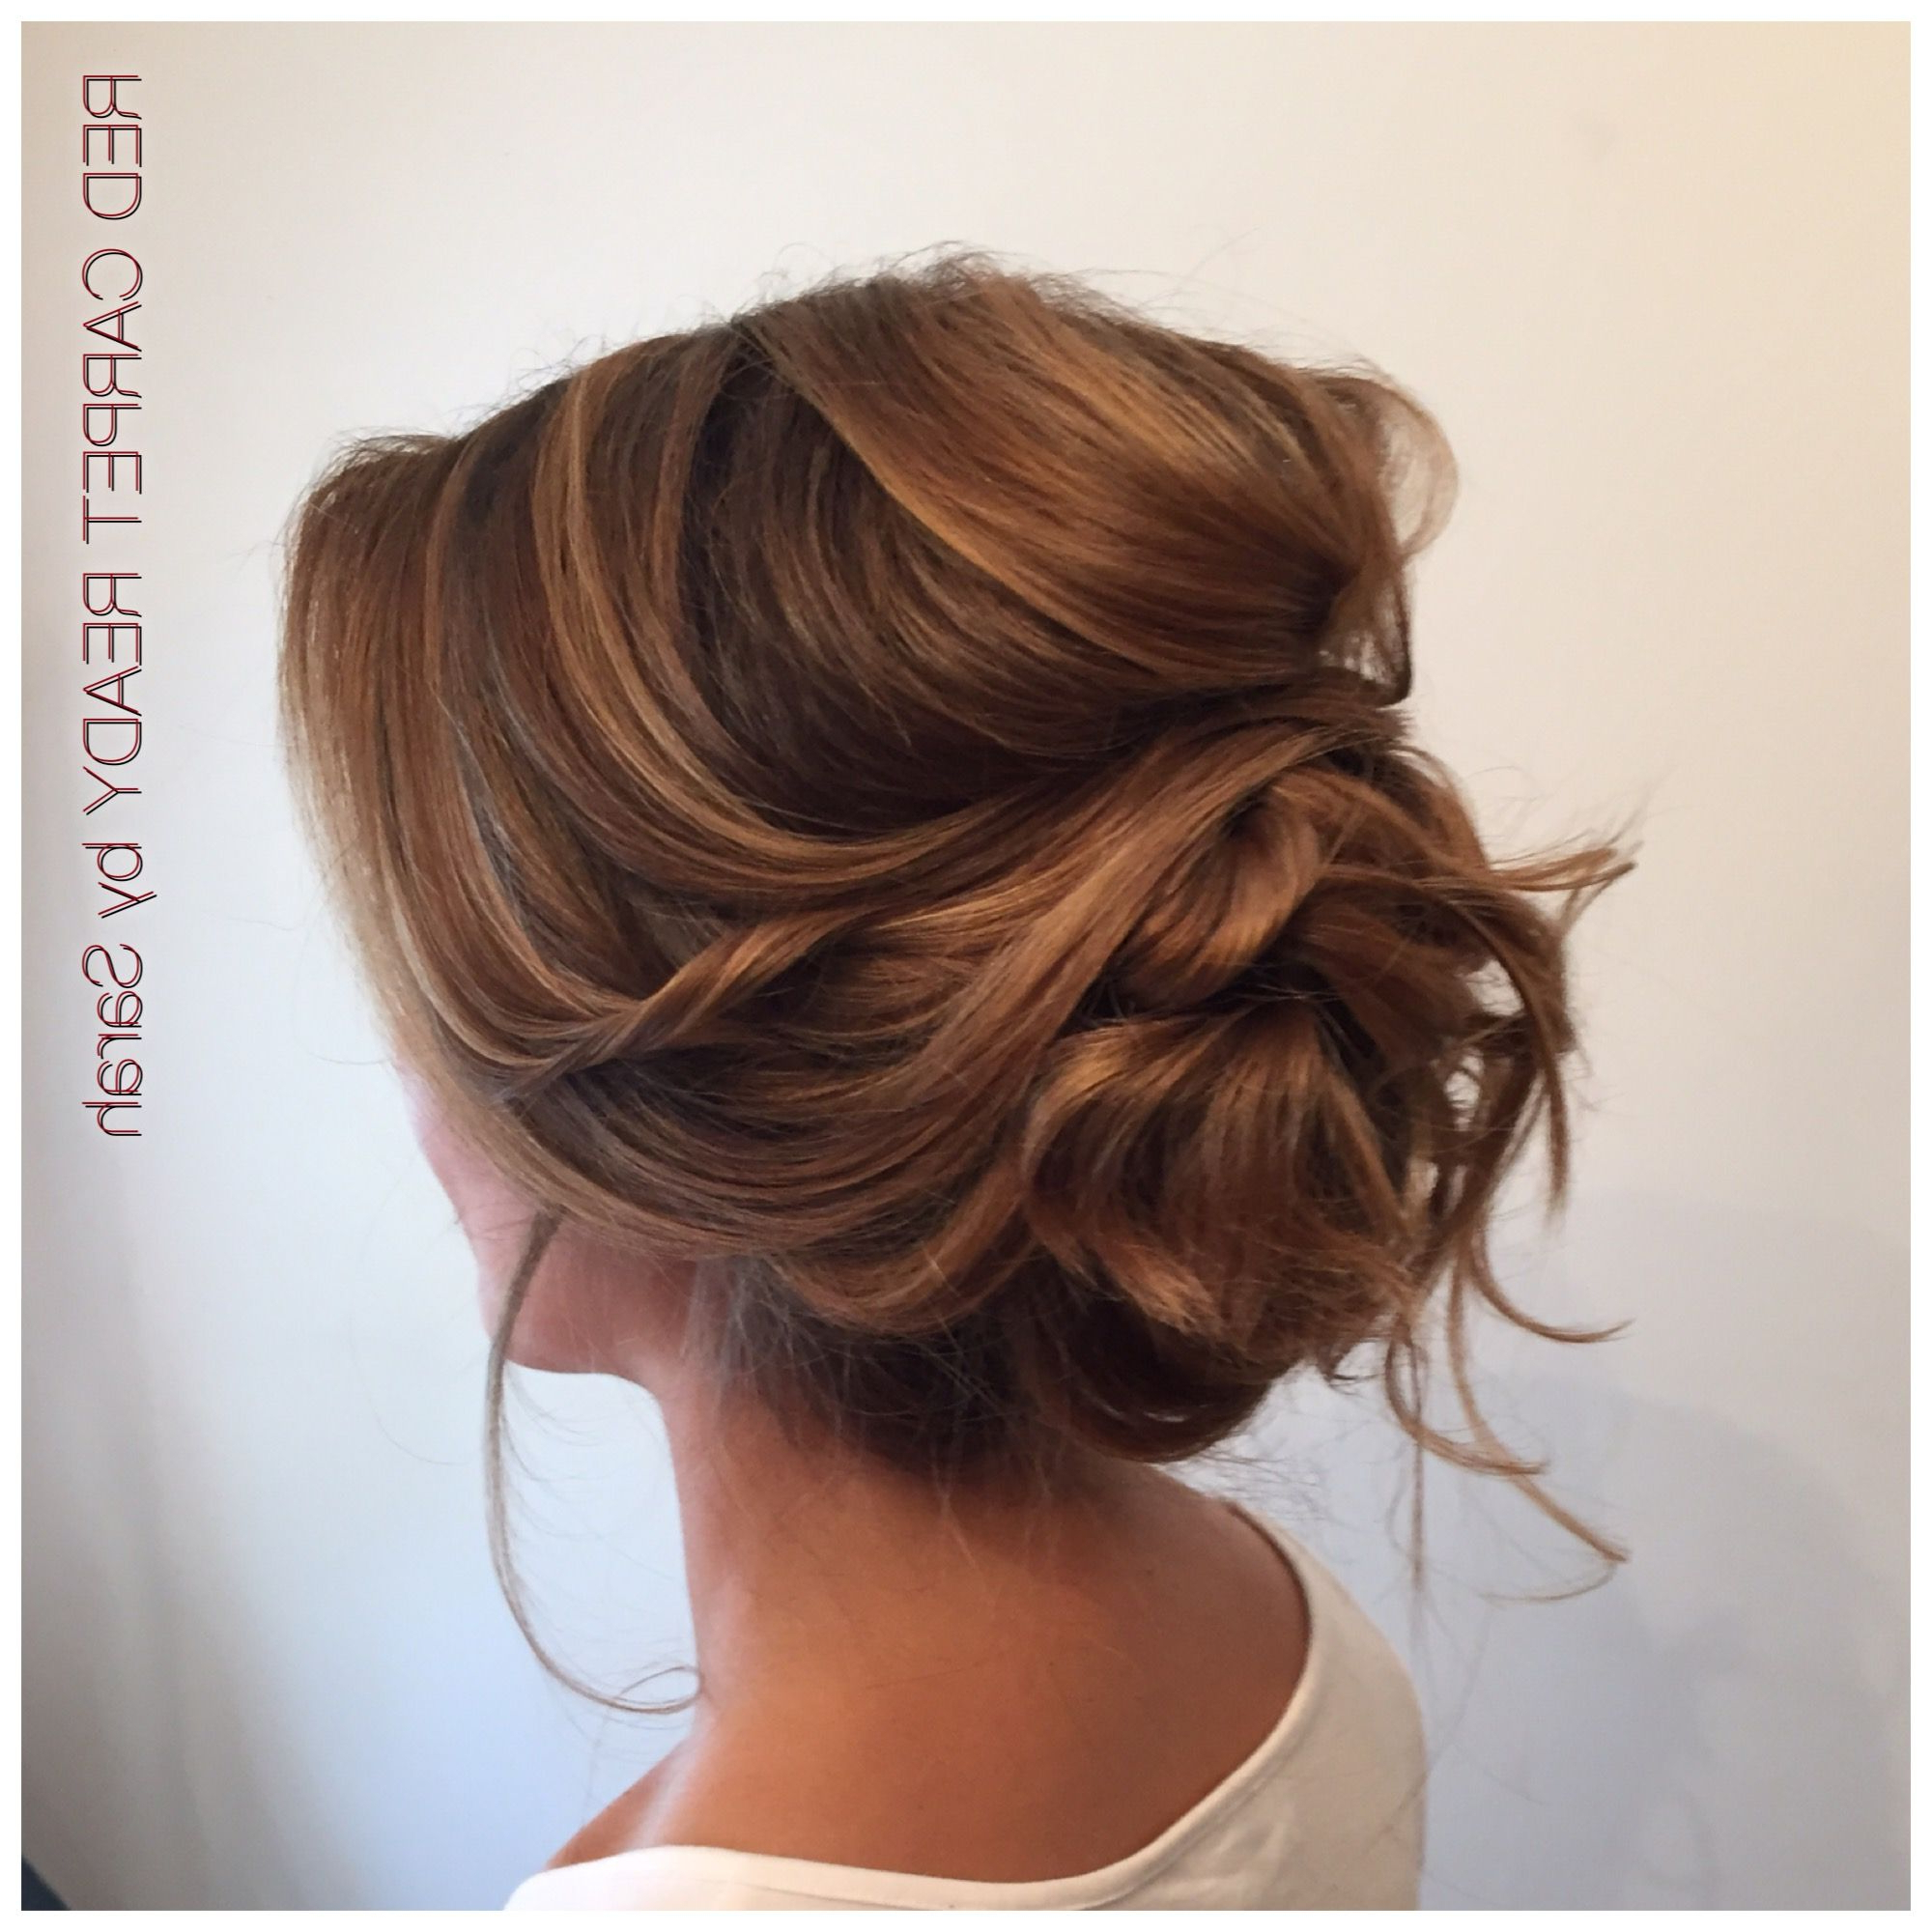 Hairstyles : Easy Twist Updo Prom Hairstyles Cute Girls Also With Pertaining To Newest Twisted Low Bun Hairstyles For Prom (View 2 of 20)